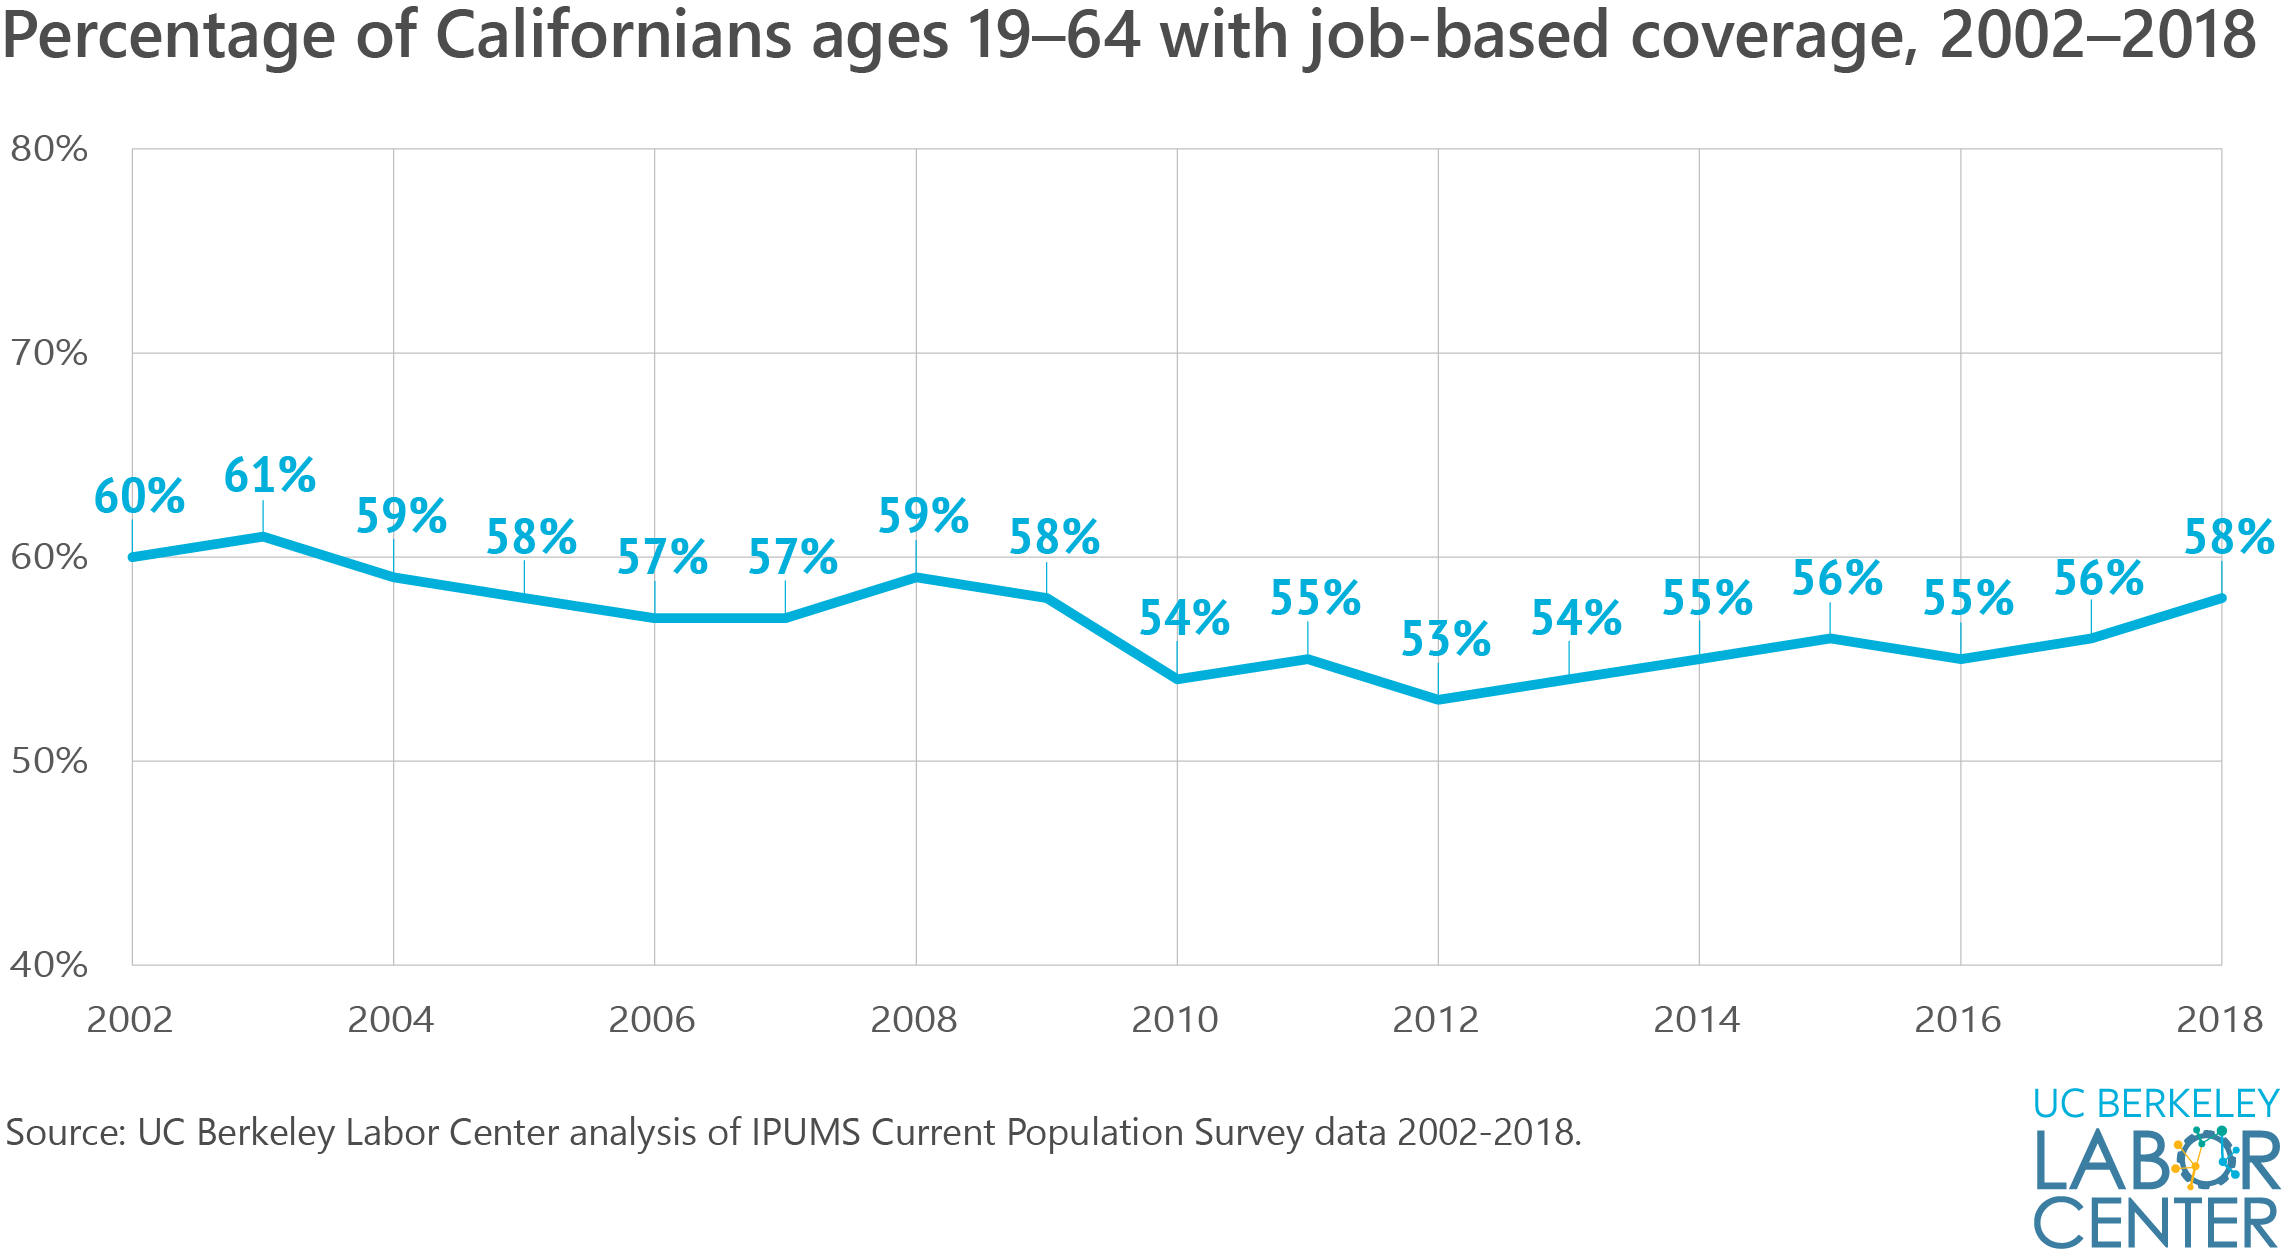 Percentage with Job-Based Coverage